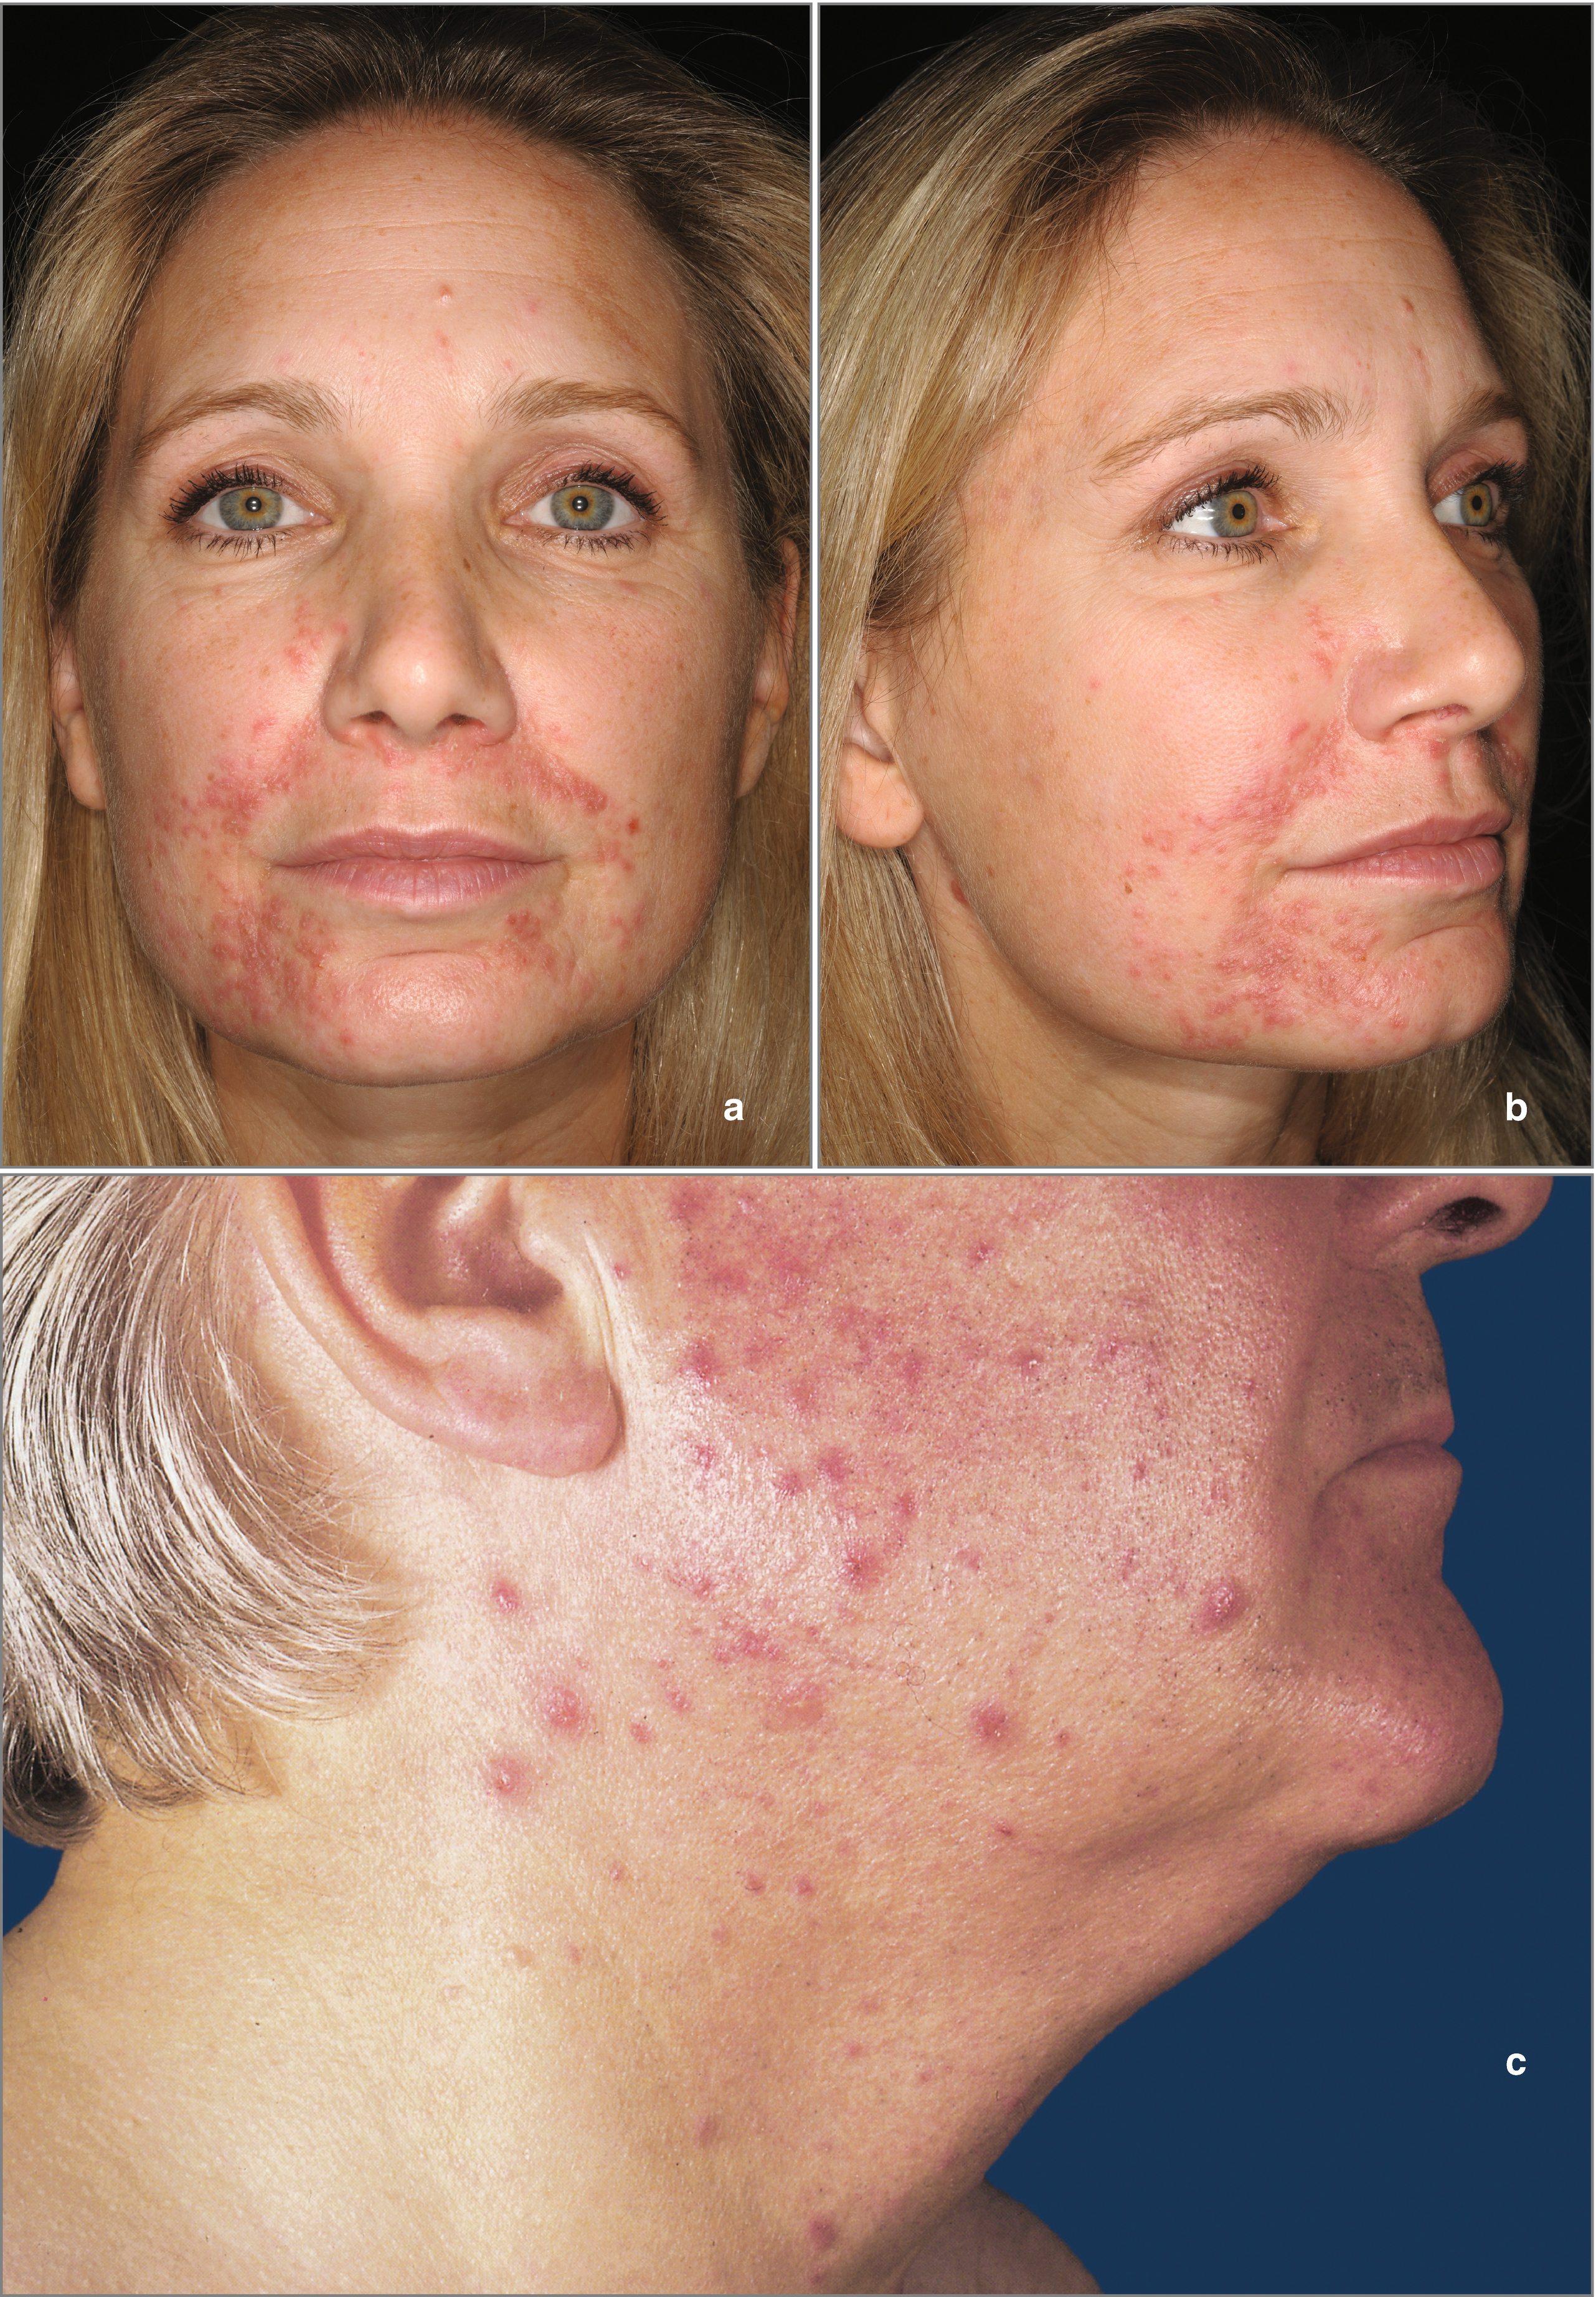 Rosacea Clinic and Classification | SpringerLink